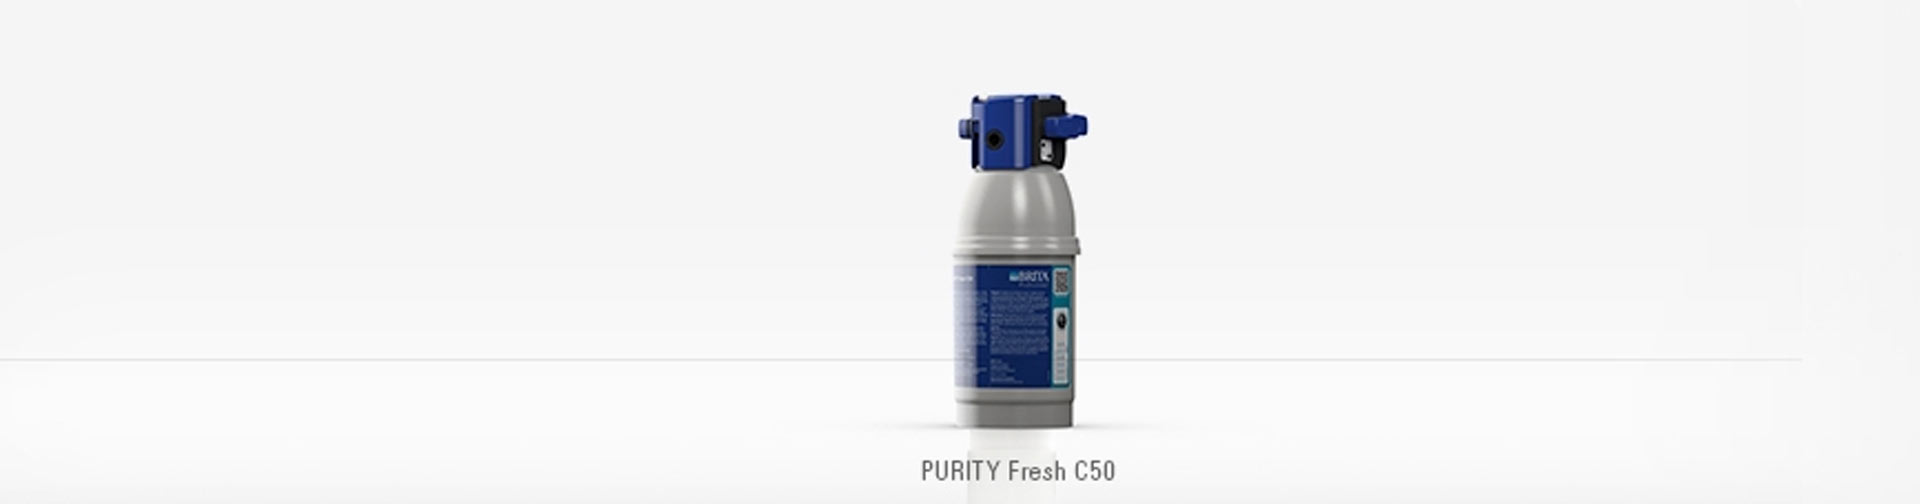 PURITY Fresh C50